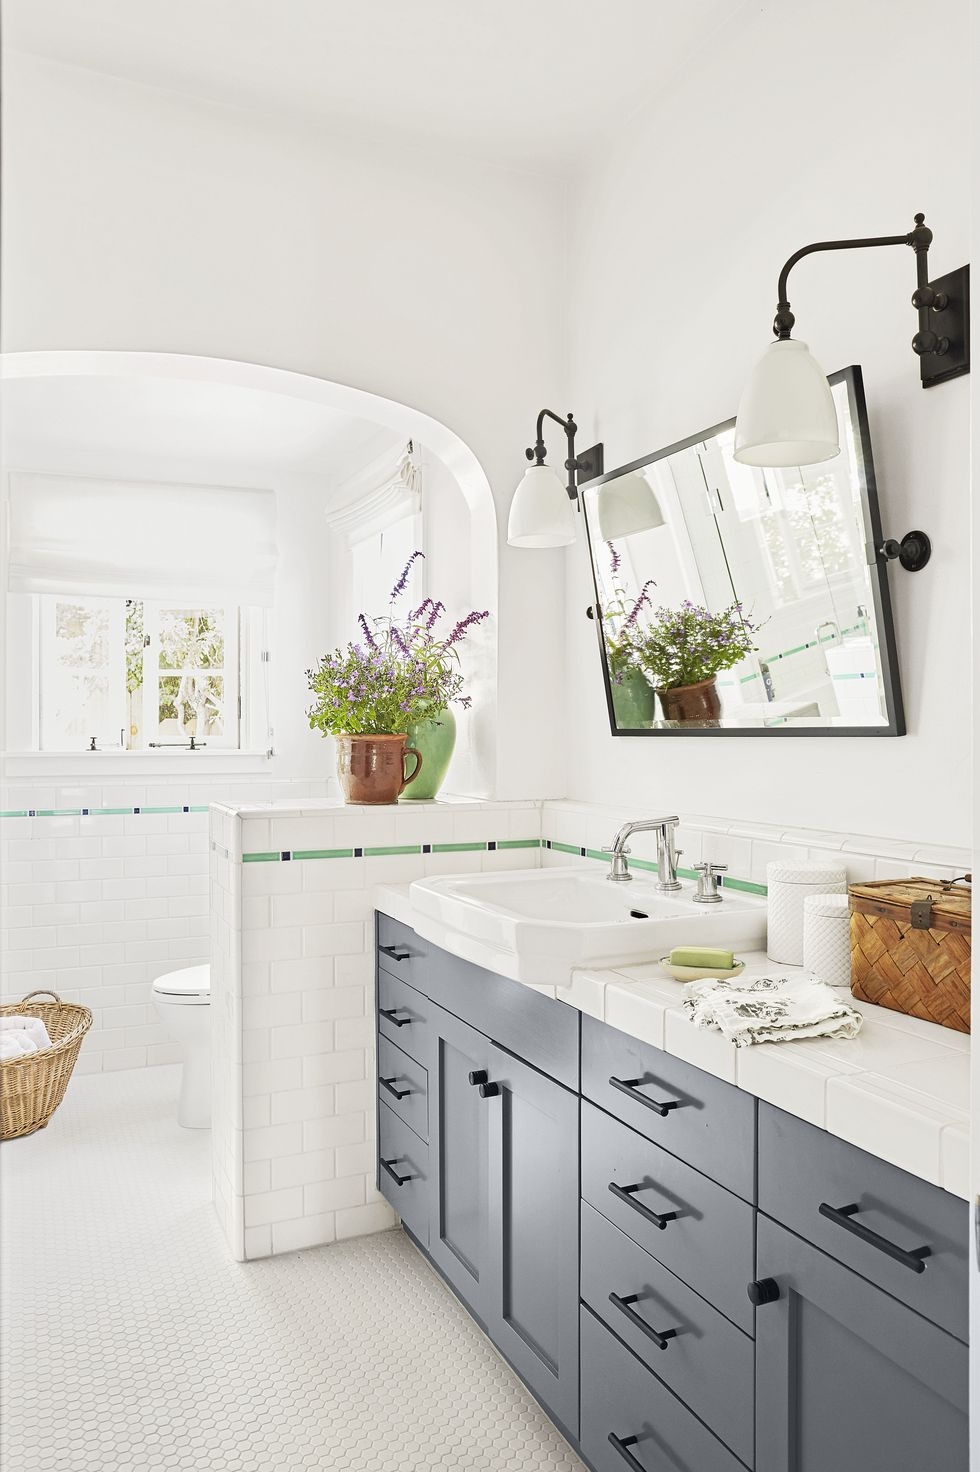 Subway tiles can work on walls, backsplashes, and even countertops. Source: Country Living